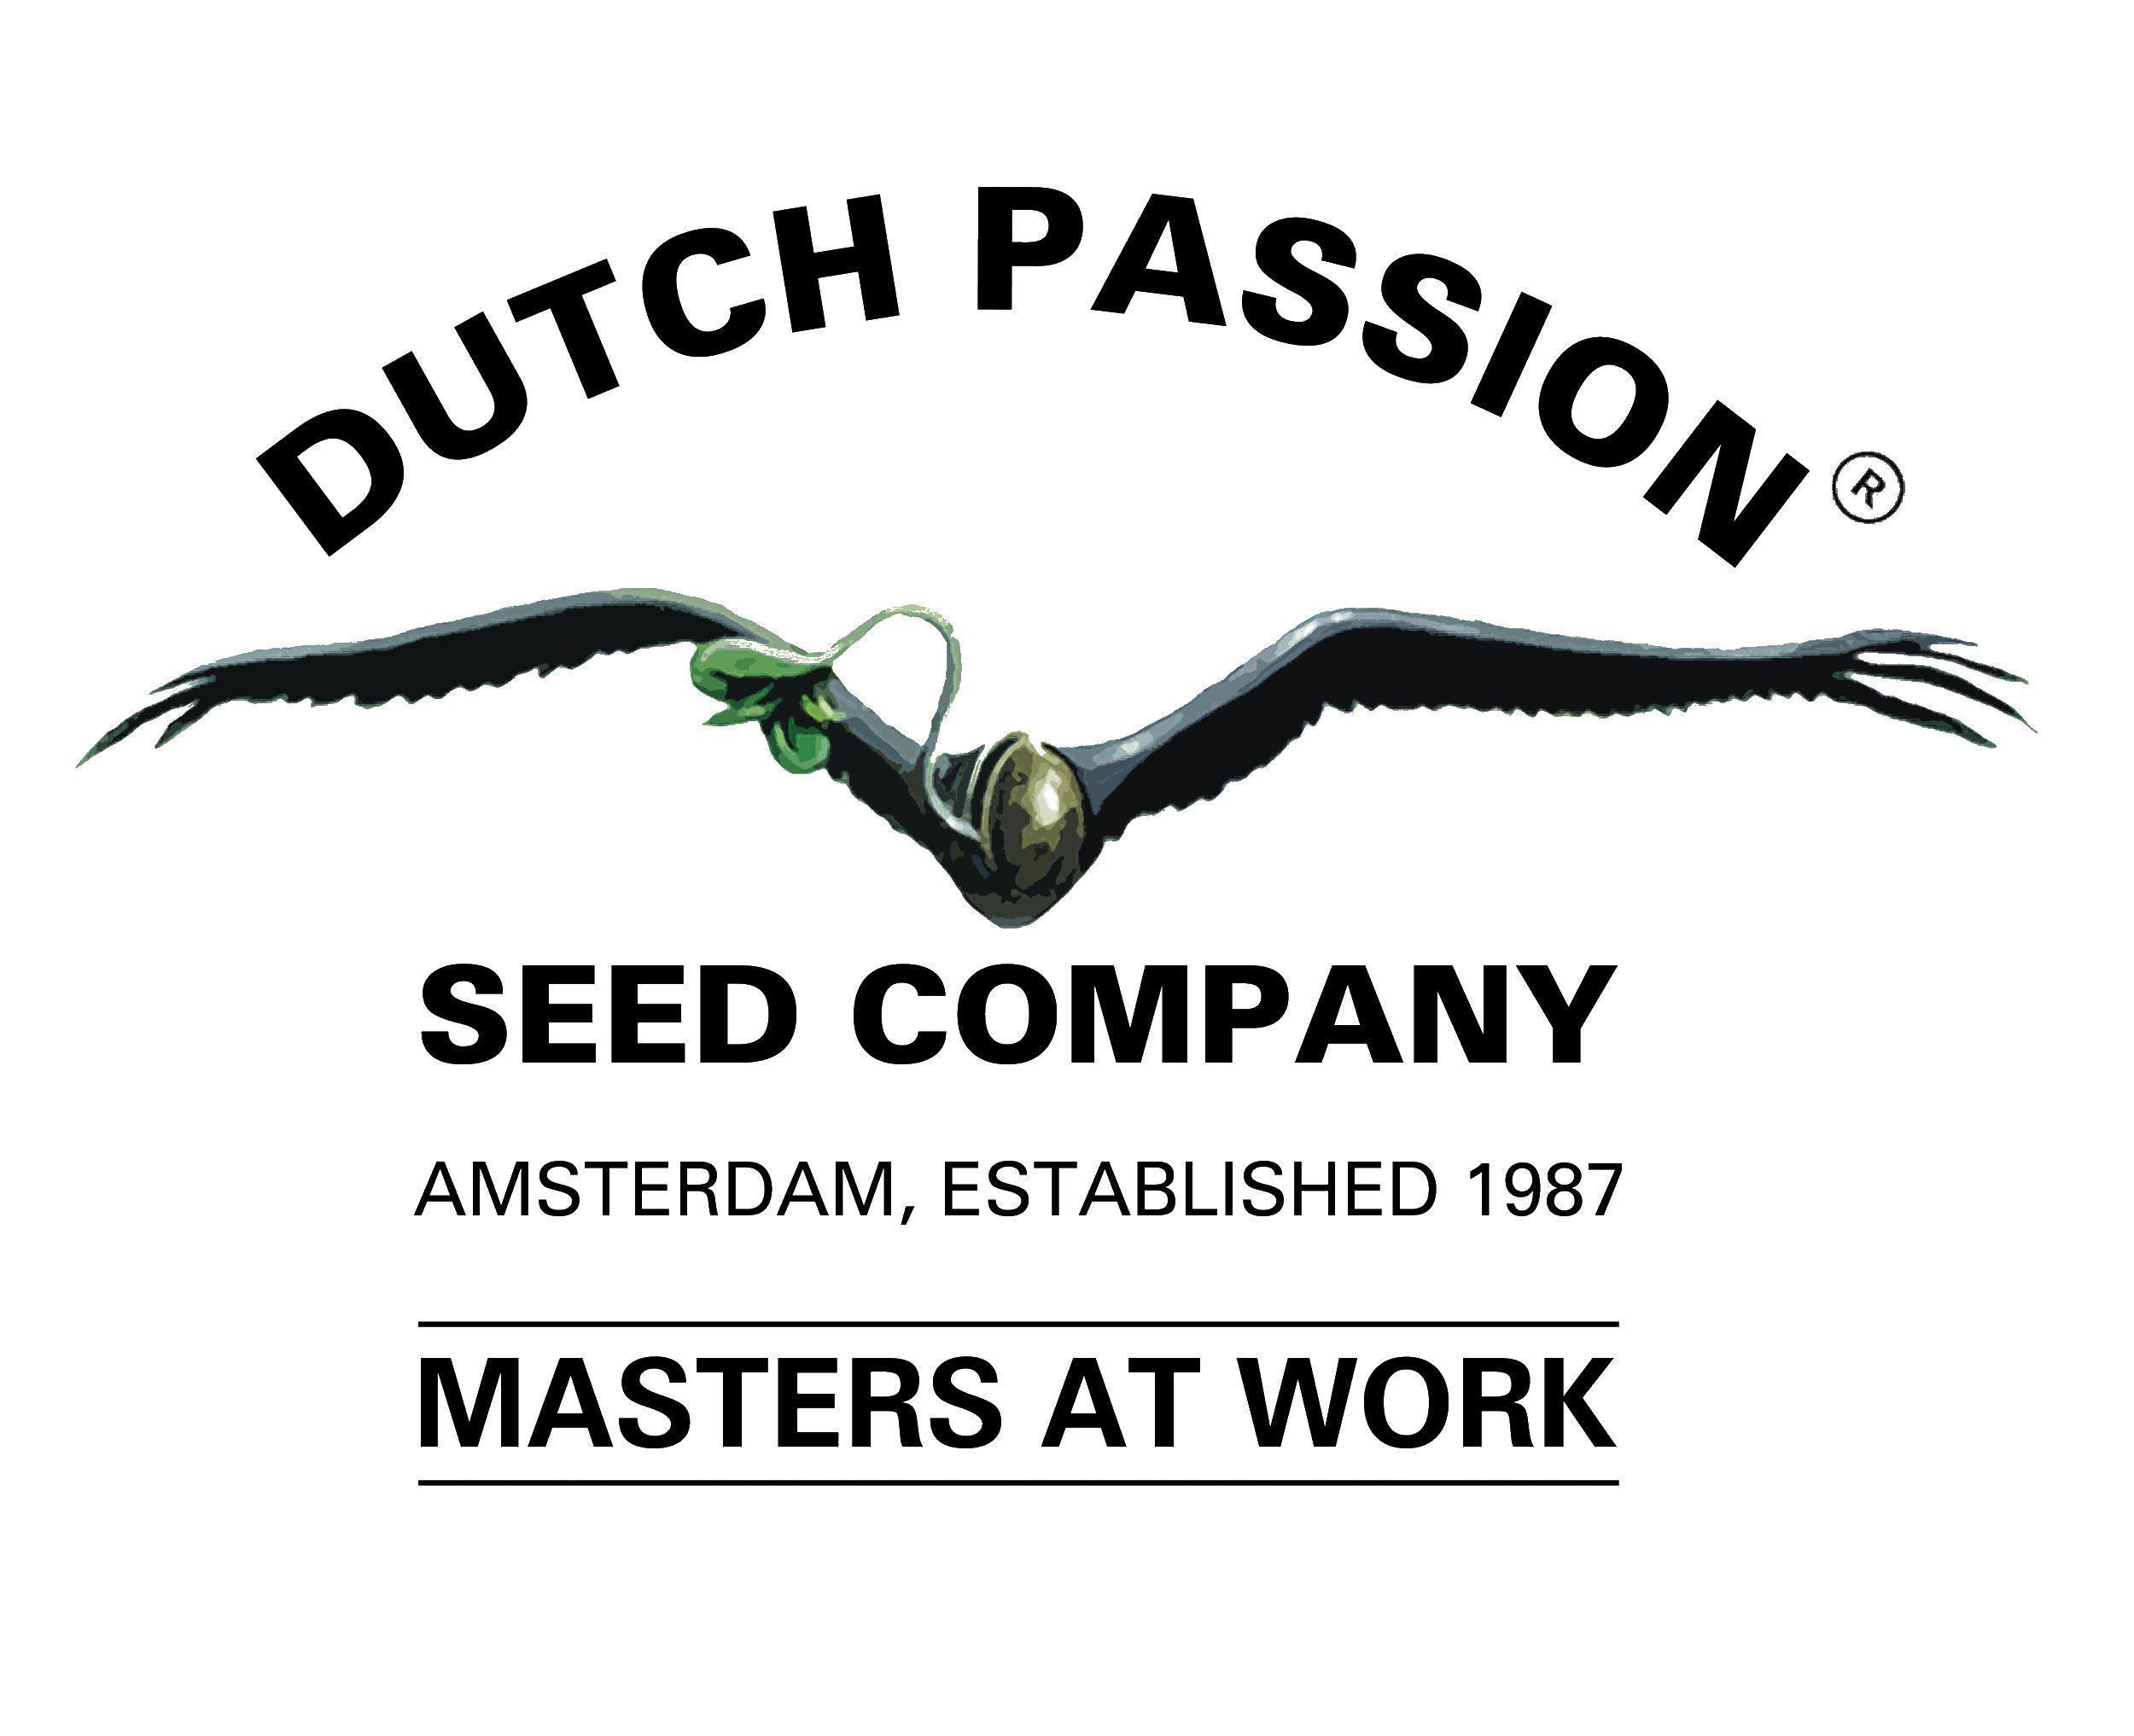 Dutch Passion logo